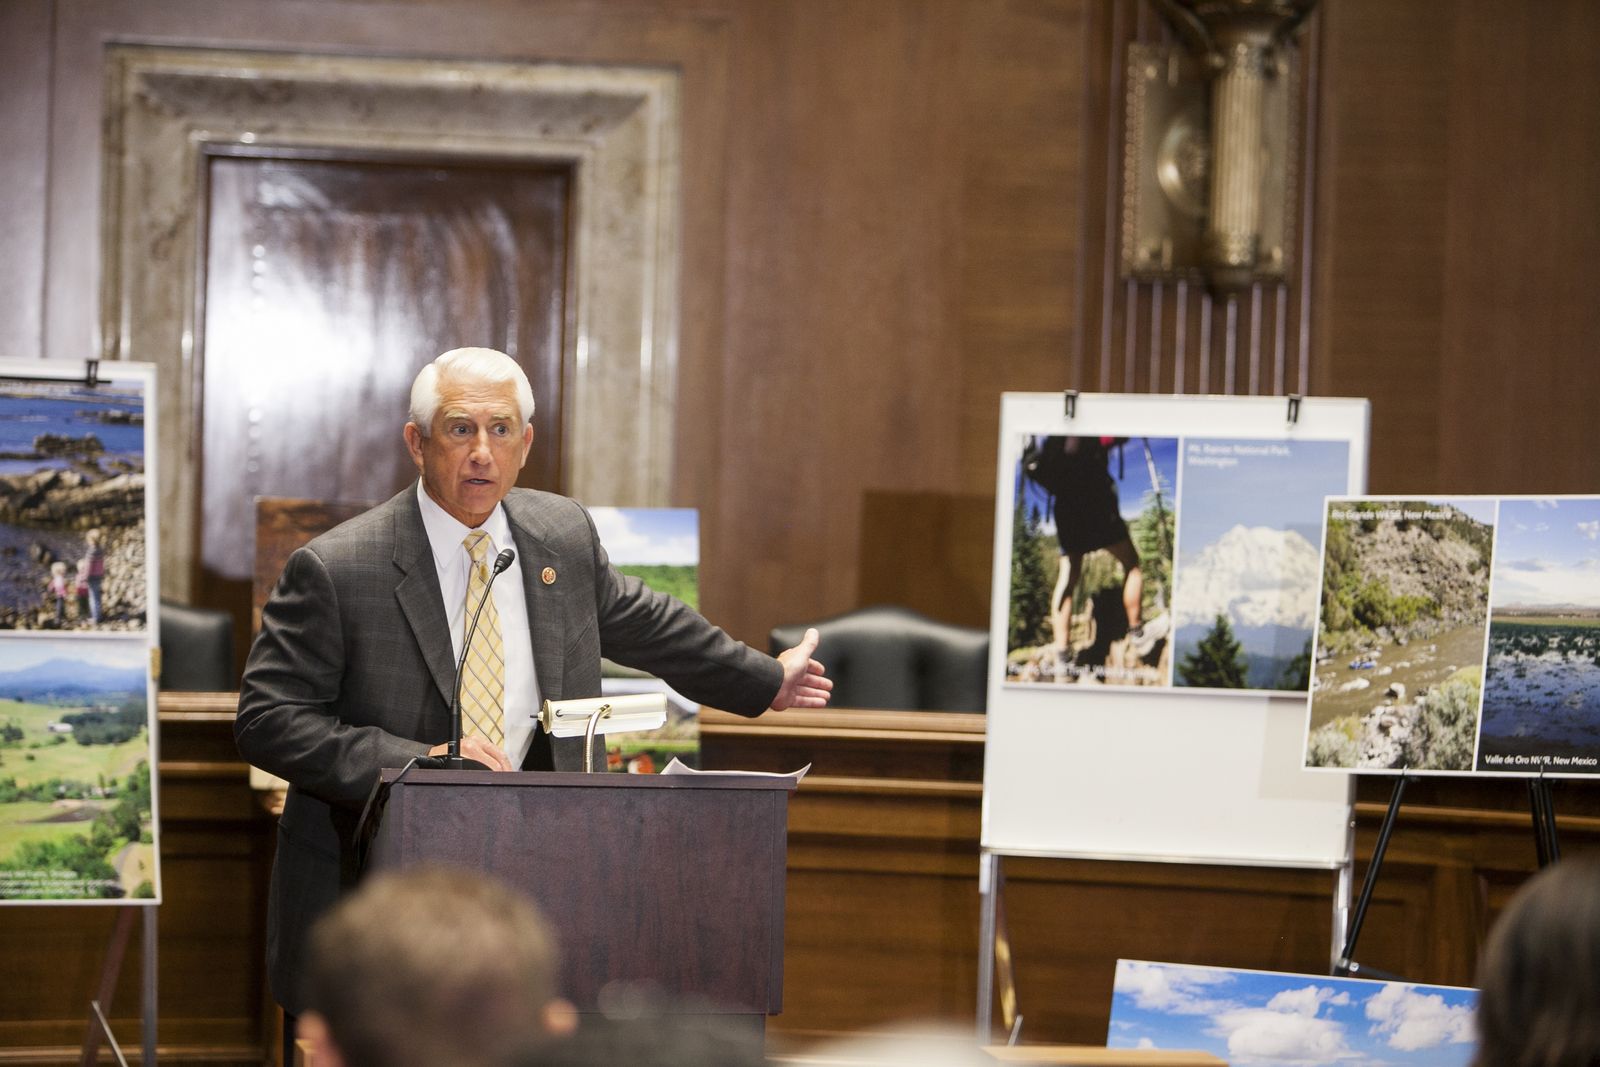 U.S. Rep. Dave Reichert speaks at a press conference celebrating the 50th Anniversary of the Land and Water Conservation Fund (LWCF) at the Dirksen Senate Office Building in Washington D.C. Photo © Erika Nortemann/TNC